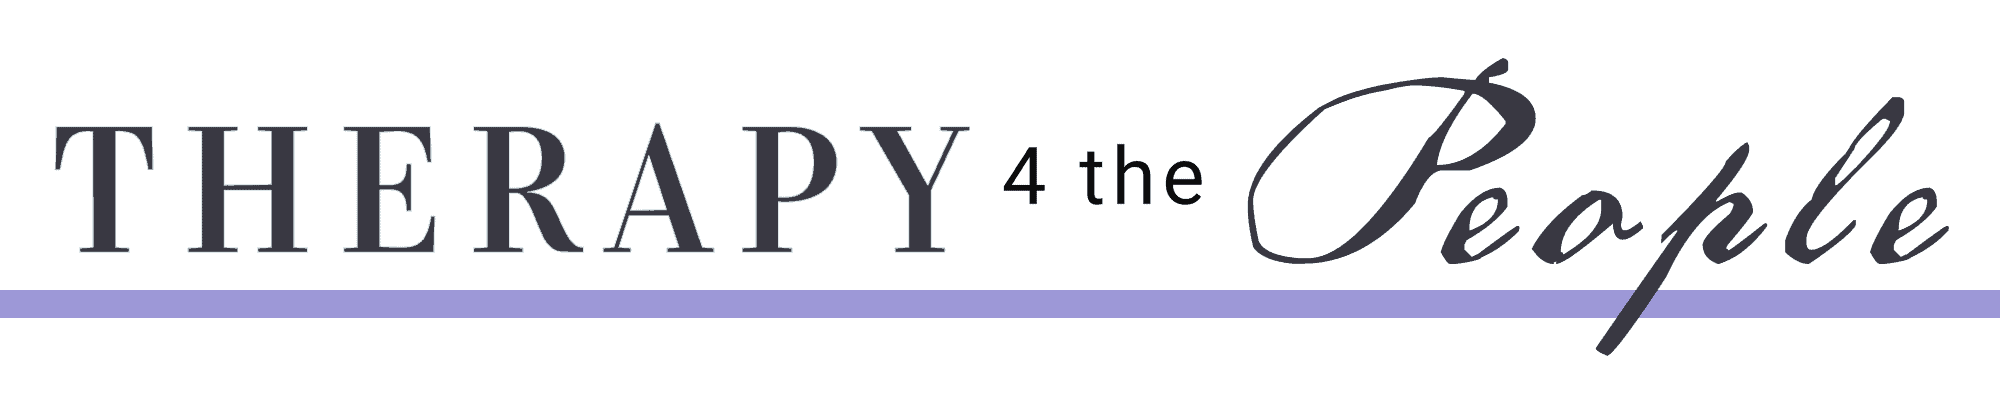 Therapy4thePeople – Find mental health support that fits your budget and unique needs.